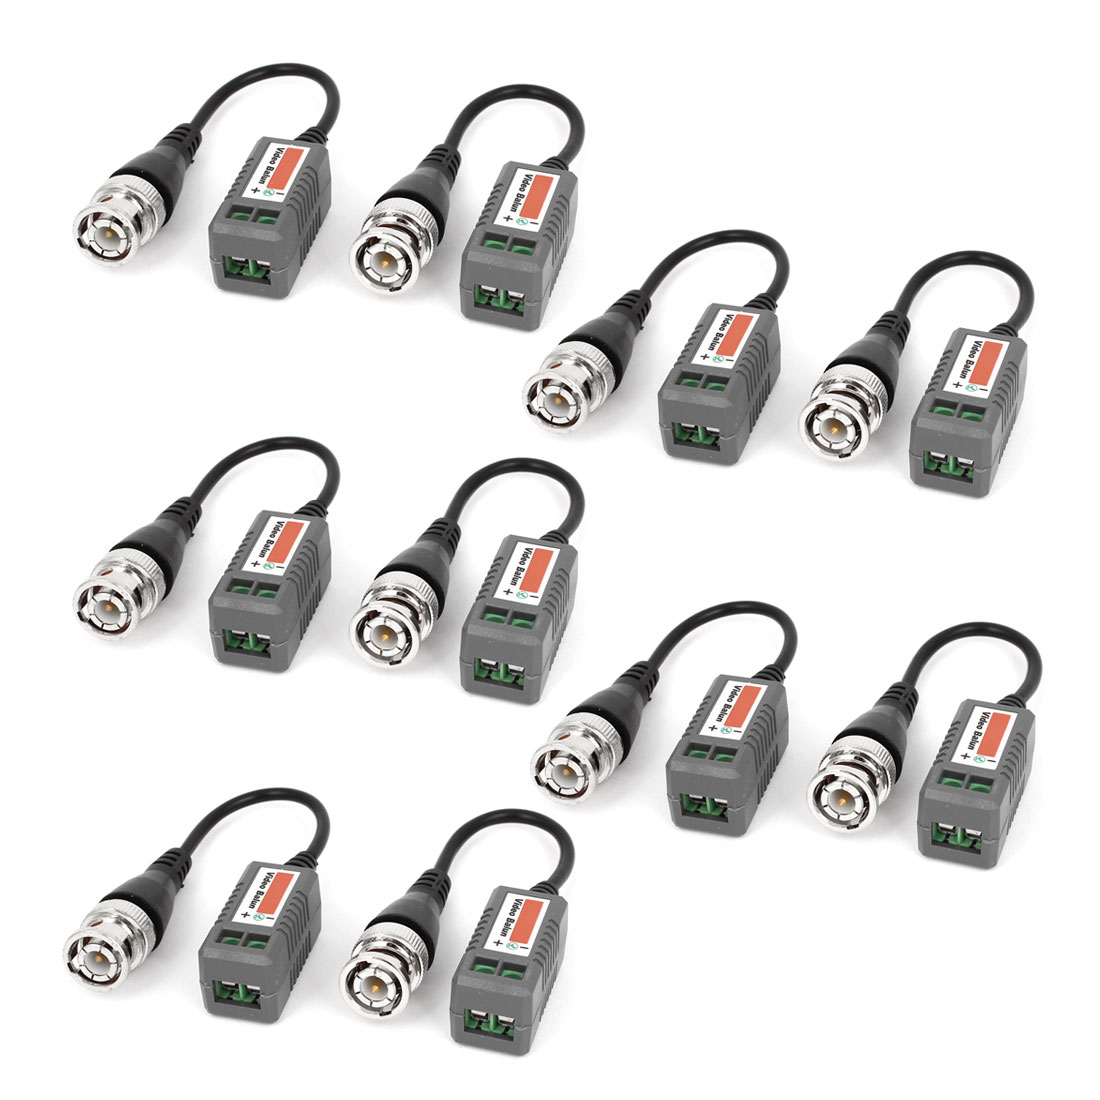 CCTV Camera BNC Male Connector UTP 1CH Passive Video Balun Transceiver 10 Pcs